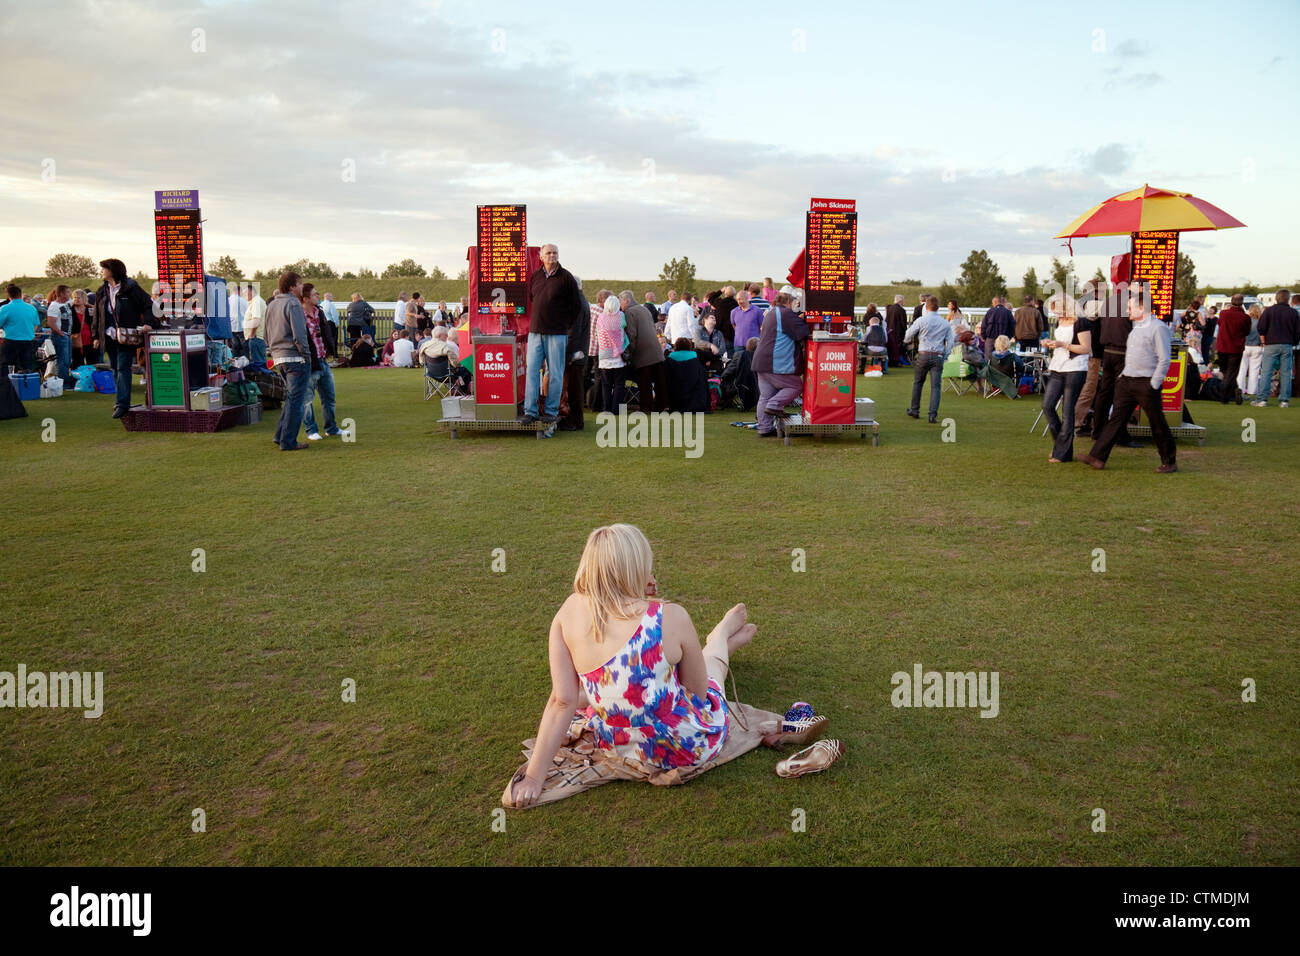 A young woman sitting down at the races, with betting booths, Newmarket July racecourse Suffolk UK - Stock Image